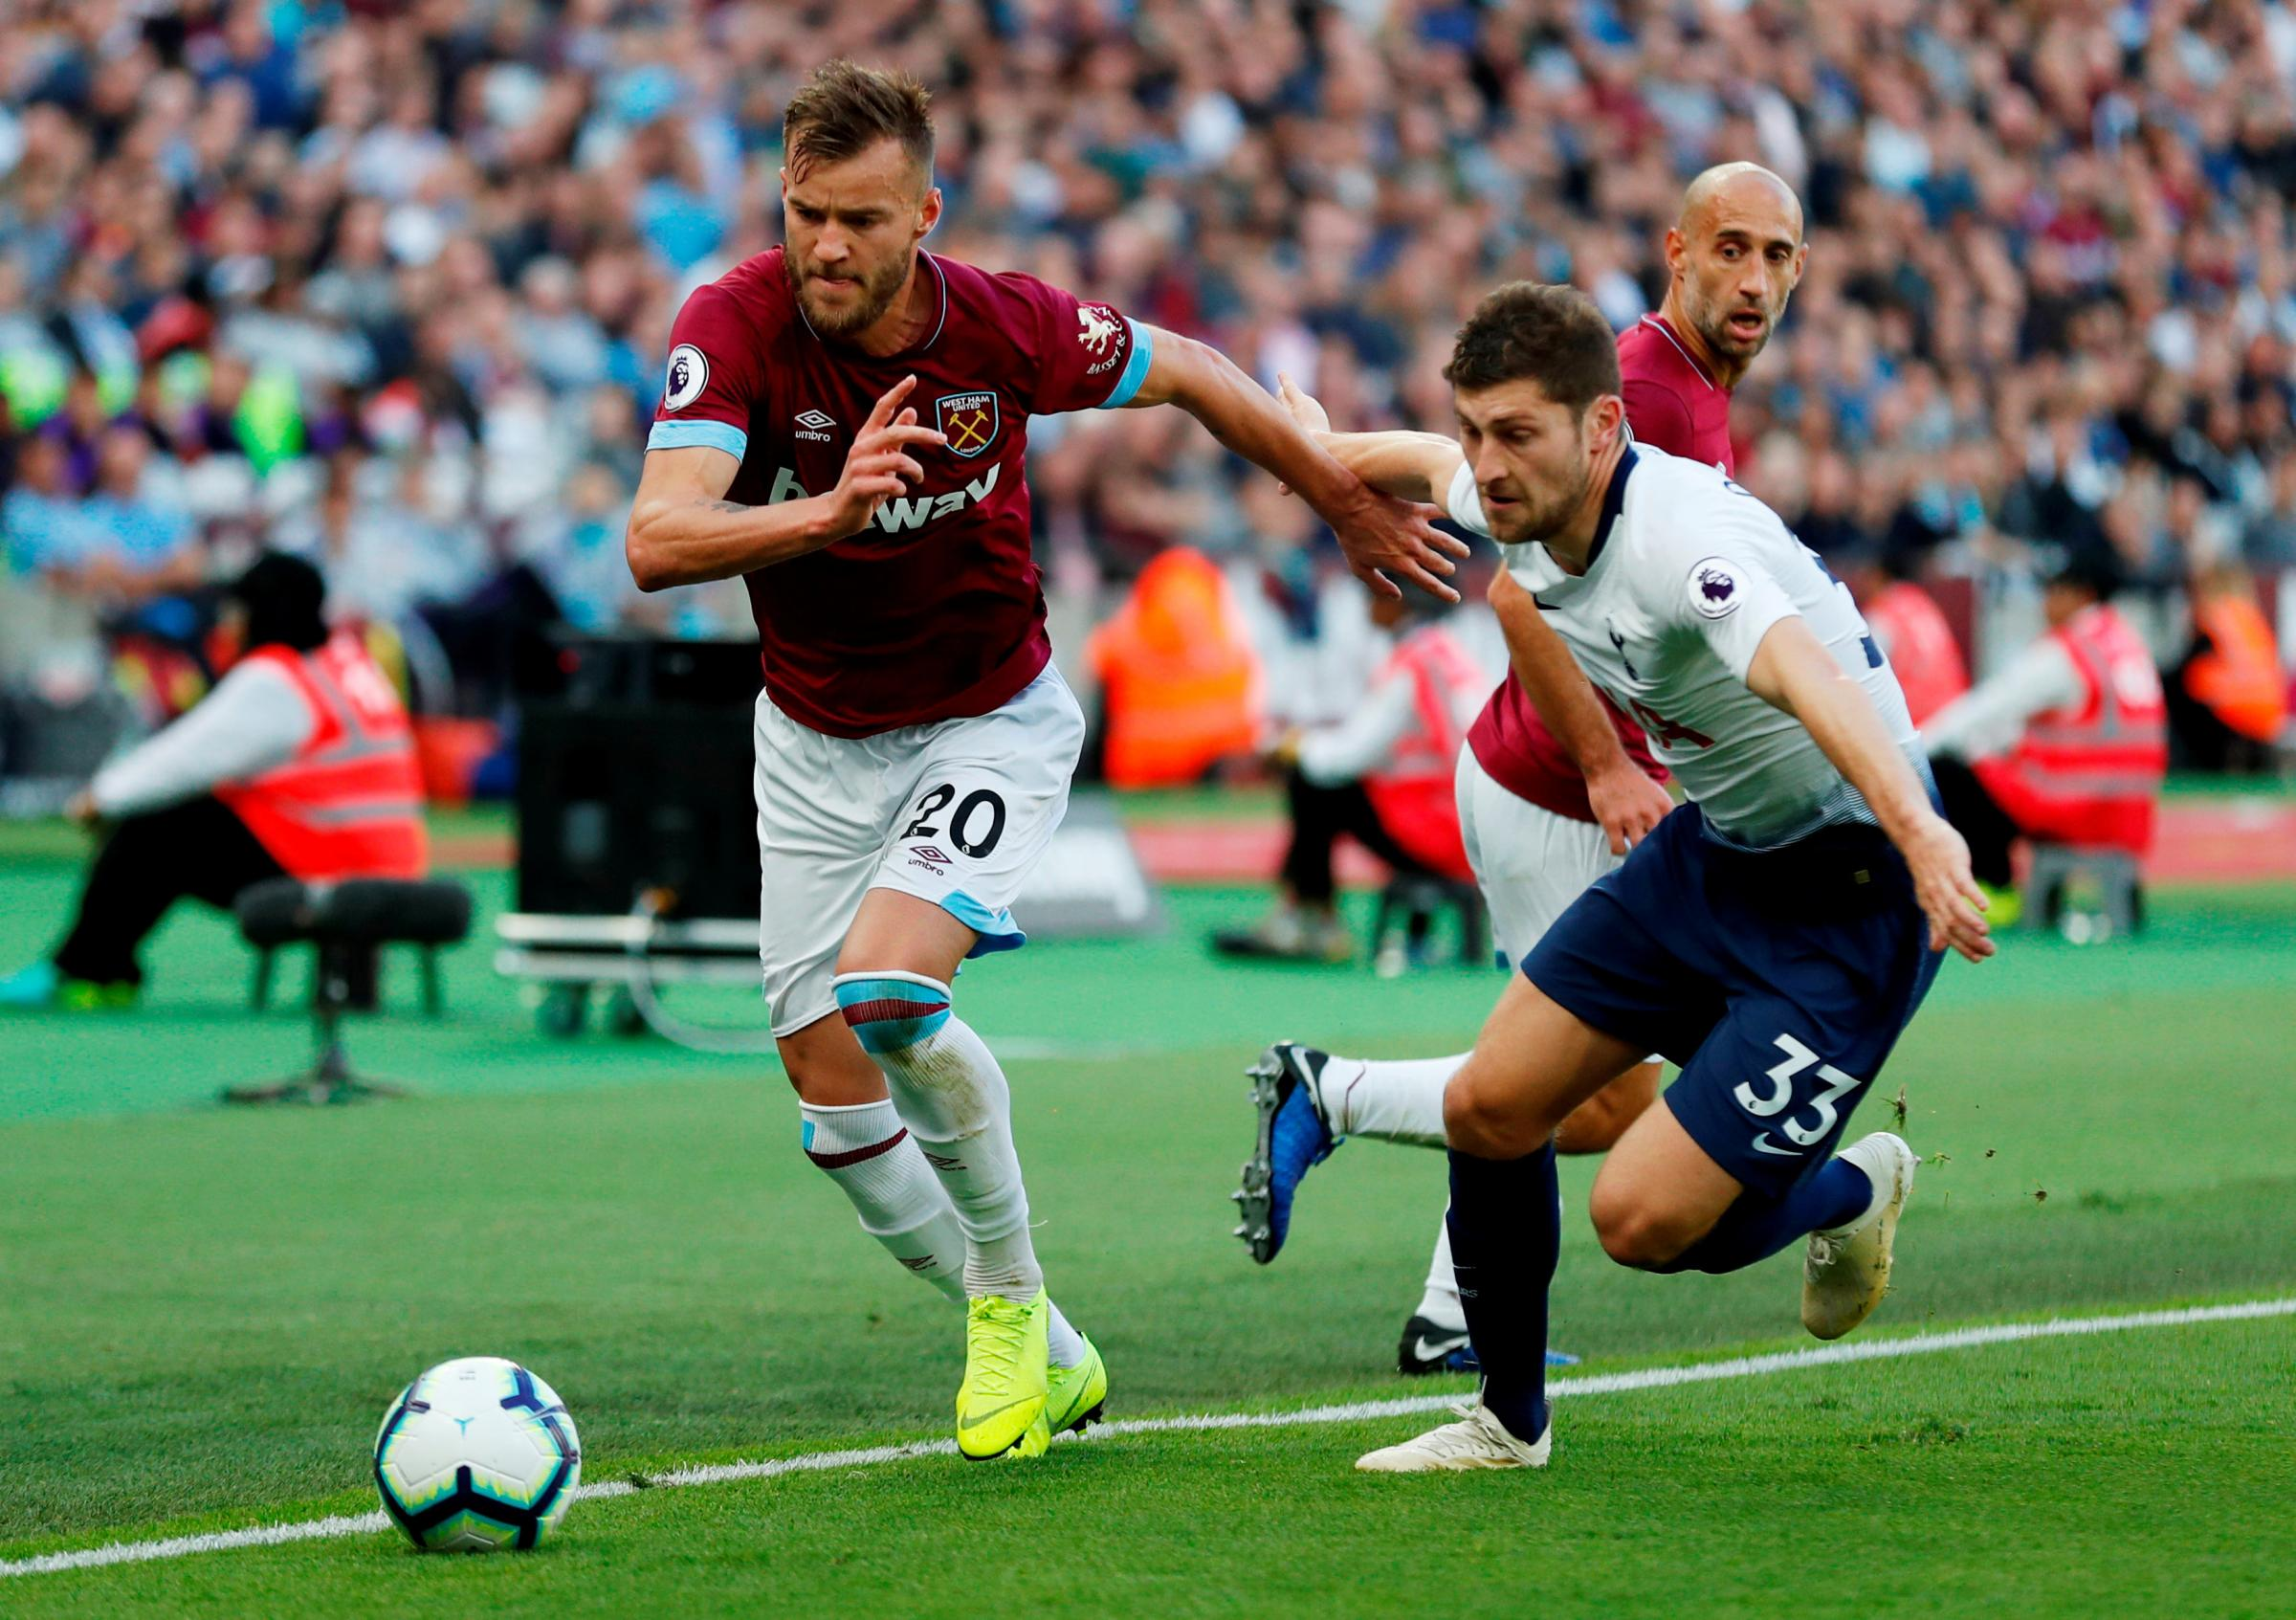 West Ham have been dealt a blow, with Andriy Yarmolenko set to be ruled out for six months. Picture: Action Images.